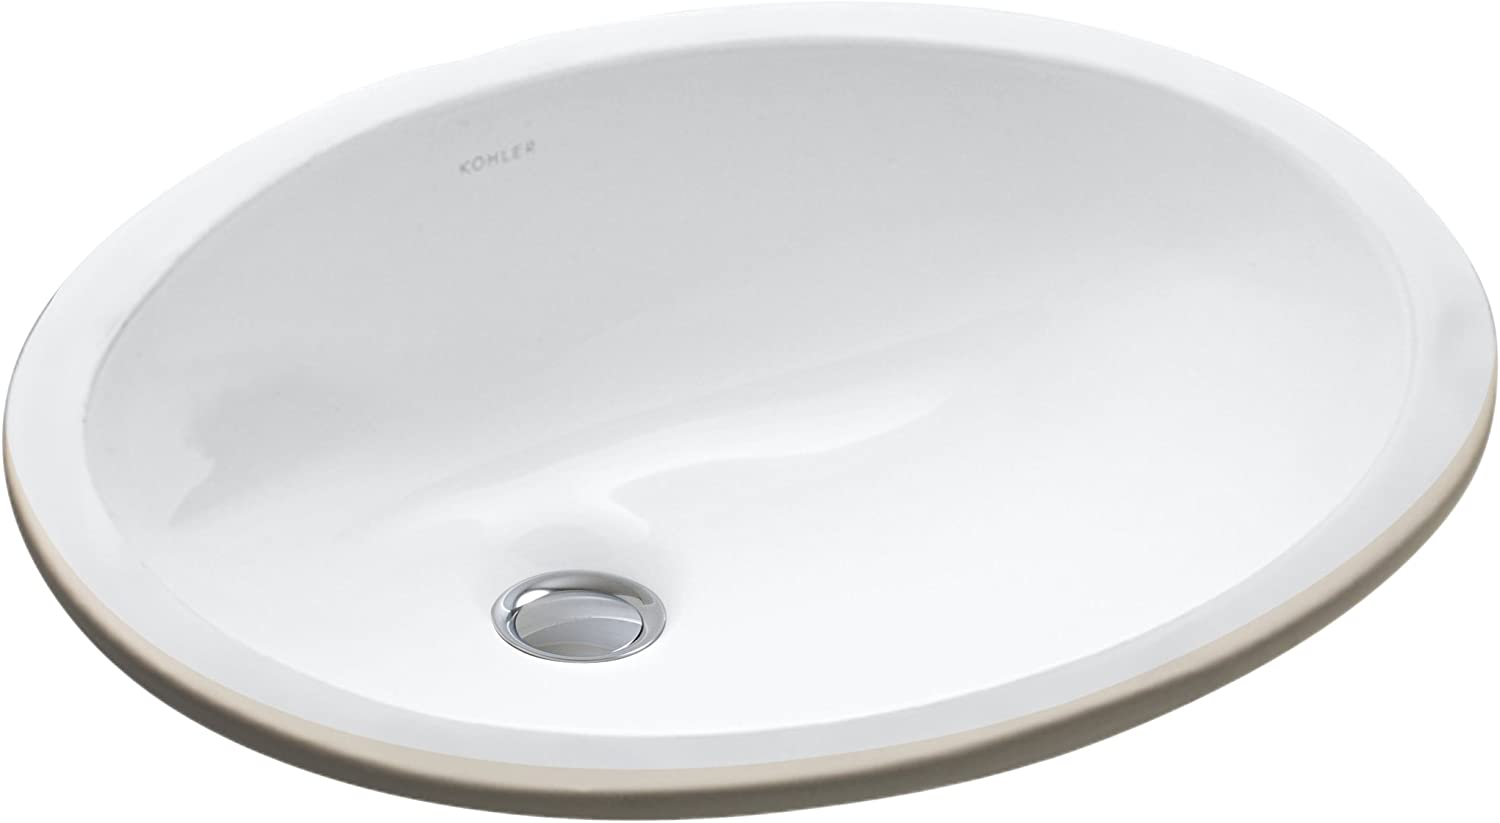 Best undermount sink: Kohler K-2209 Caxton